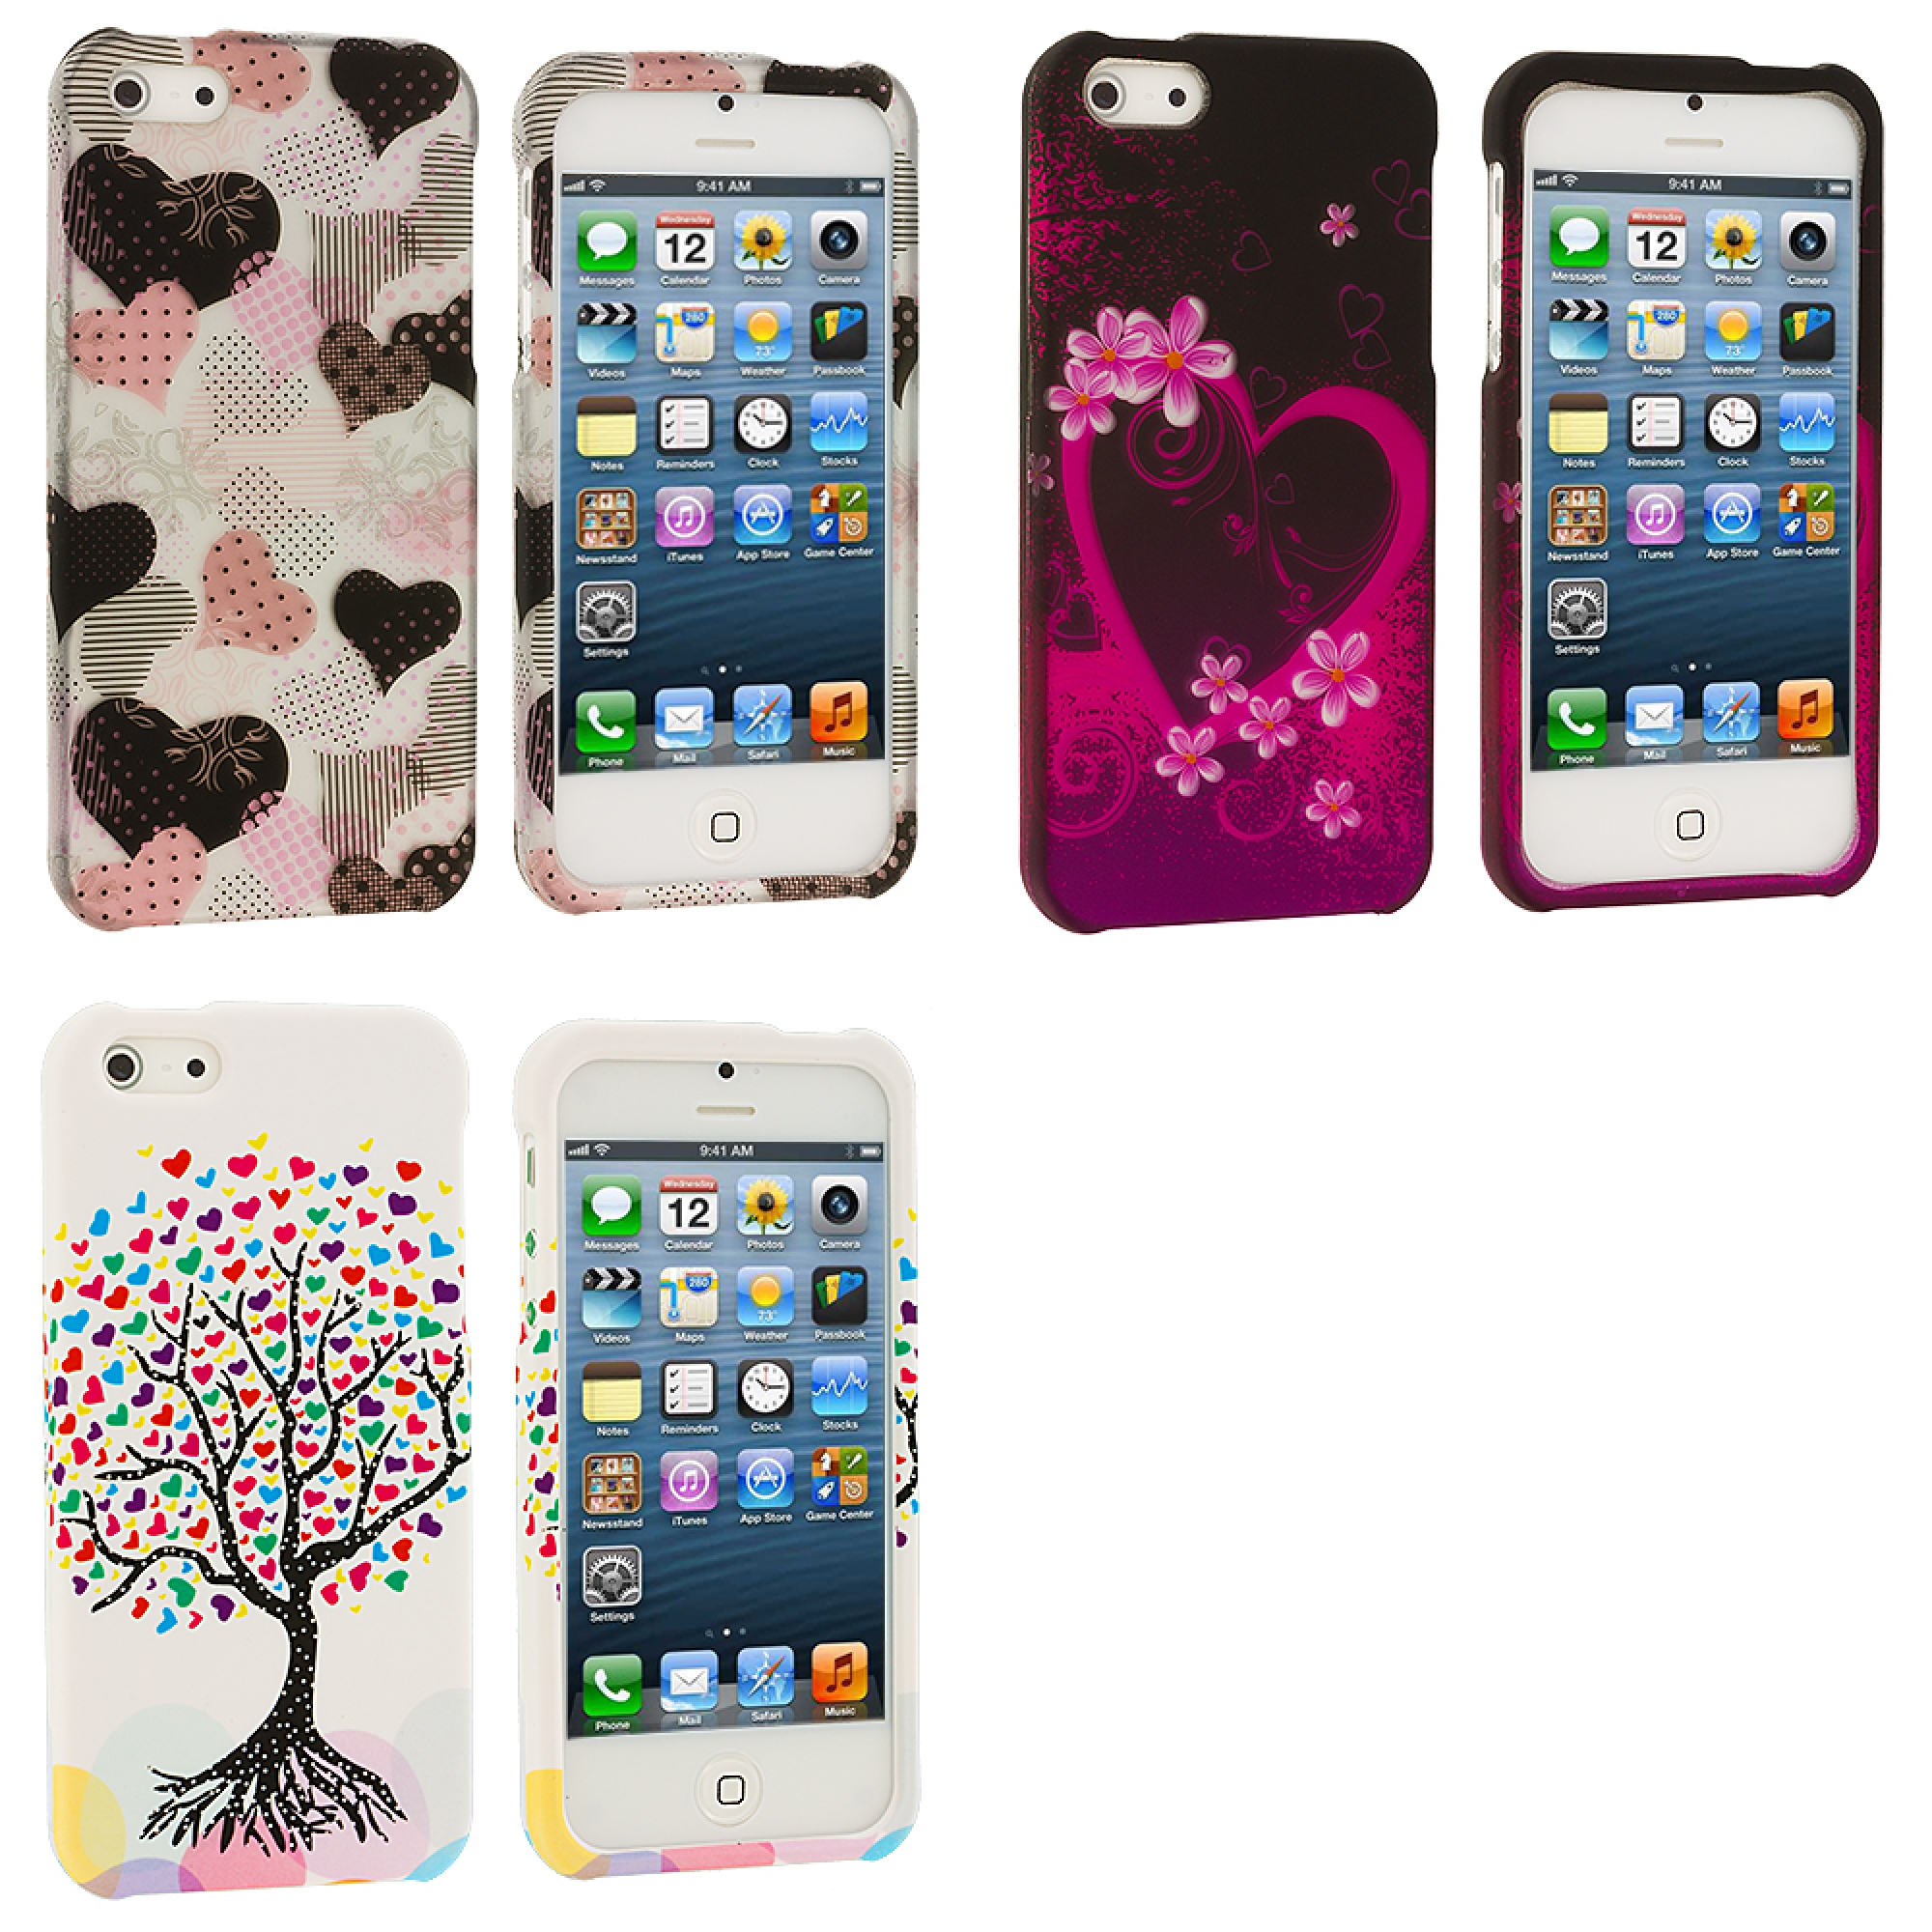 Apple iPhone 5 3 in 1 Combo Bundle Pack - Heart Love Tree Hard Rubberized Design Case Cover